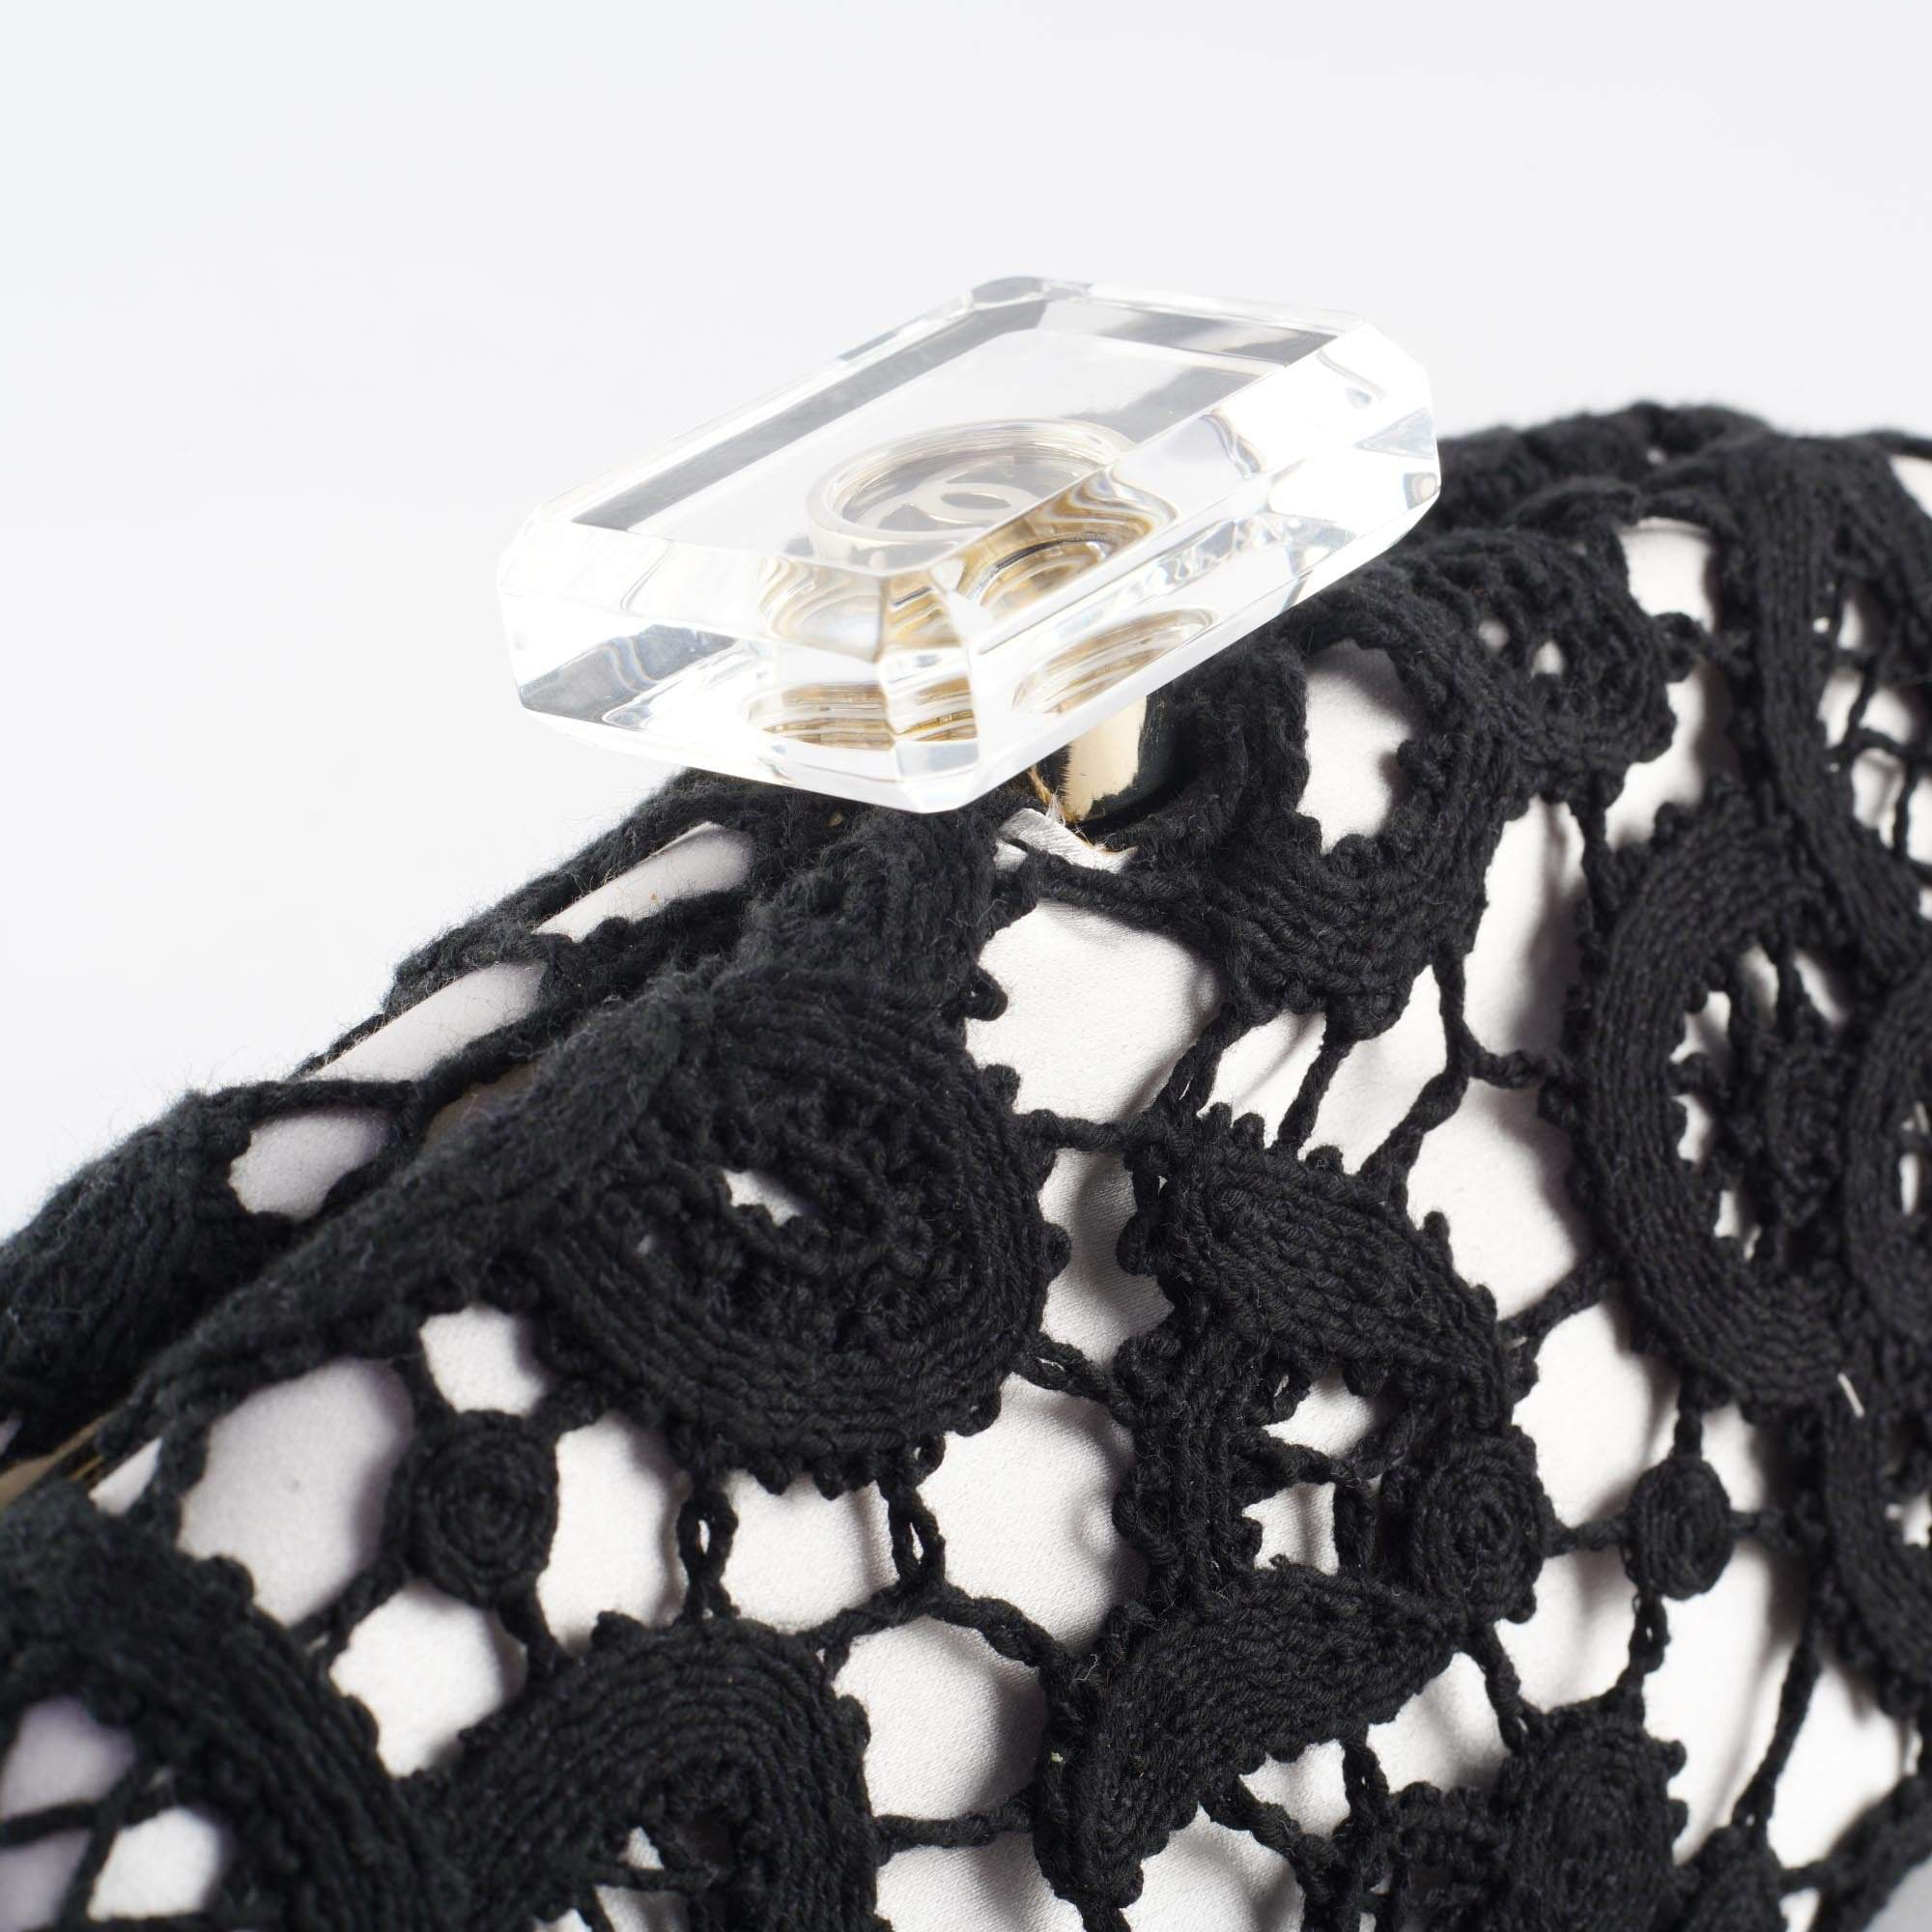 Chanel Lace Timeless Perfume Bottle Top Clutch